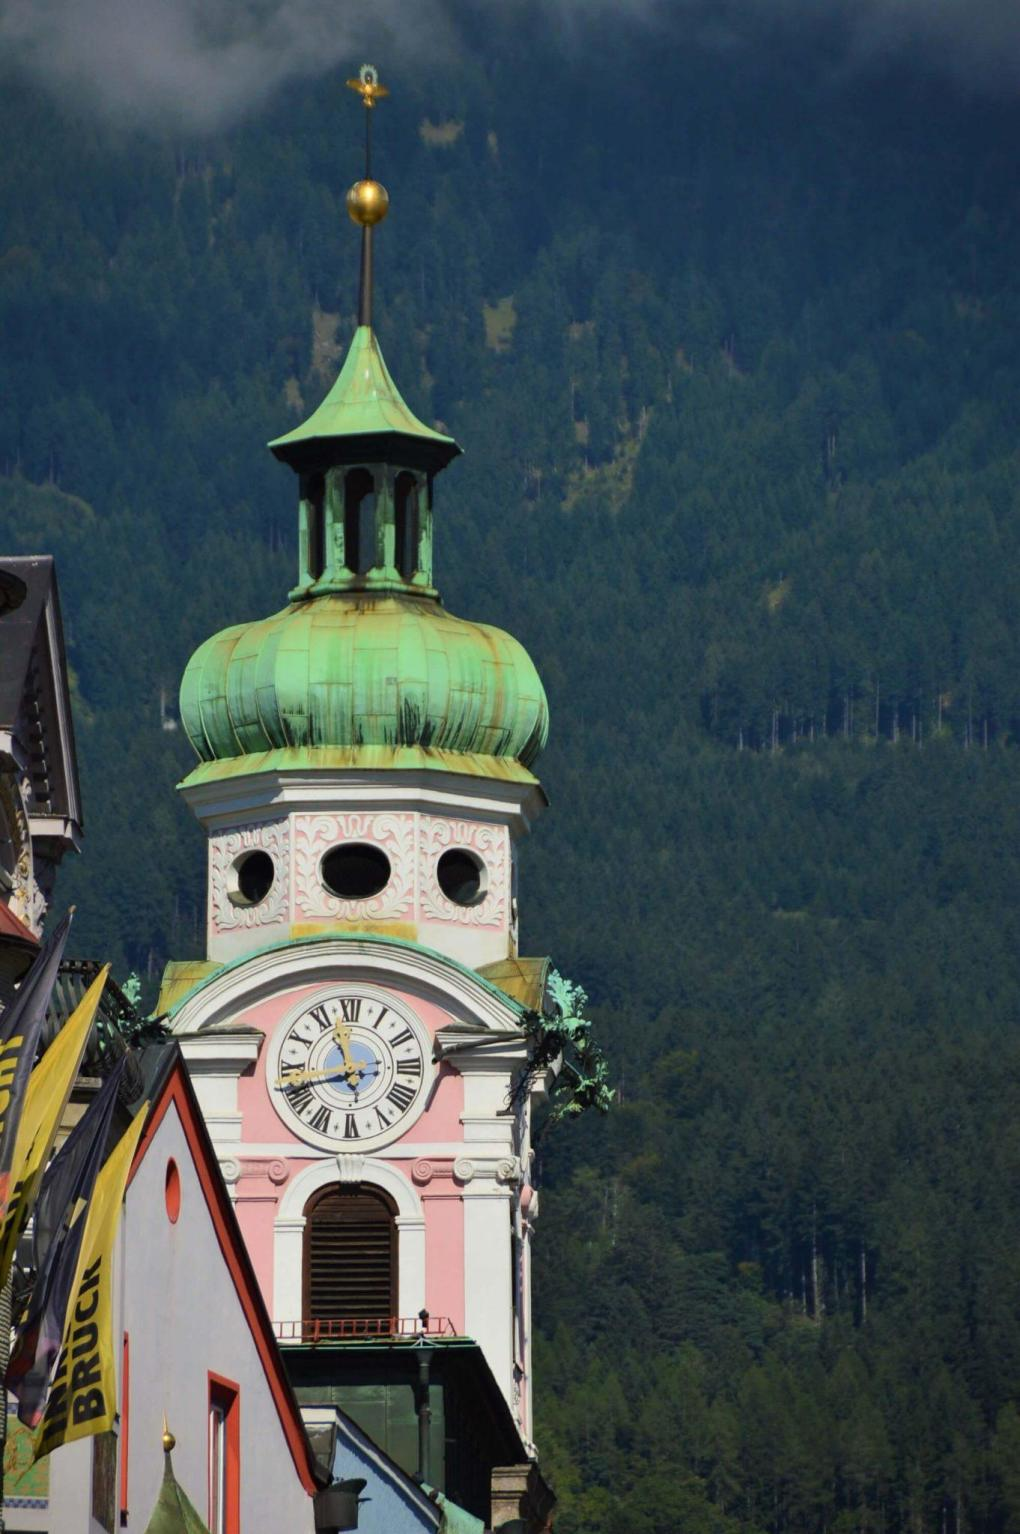 colourful steeple with old fashioned clock and mountains behind innsbruck